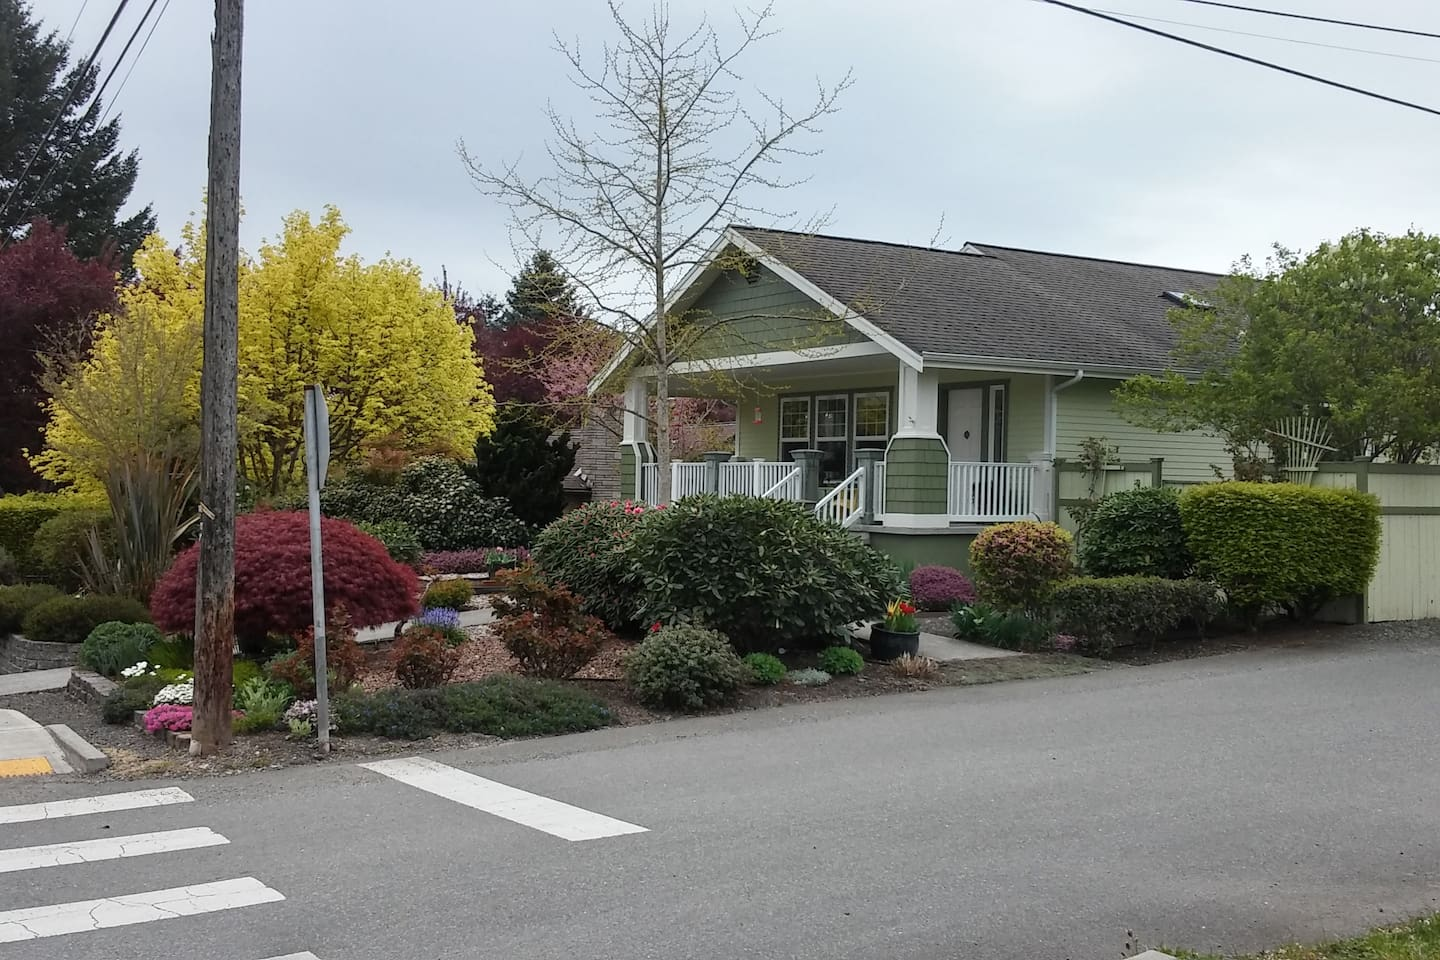 This is the host home and front yard.   Poulsbo's Perch and Parking is in the back.  We are located on the corner of 6th Avenue NE and Ryen Street.  Turn right at Ryen from 6th Ave NE.  Access the driveway off of Ryan Street.